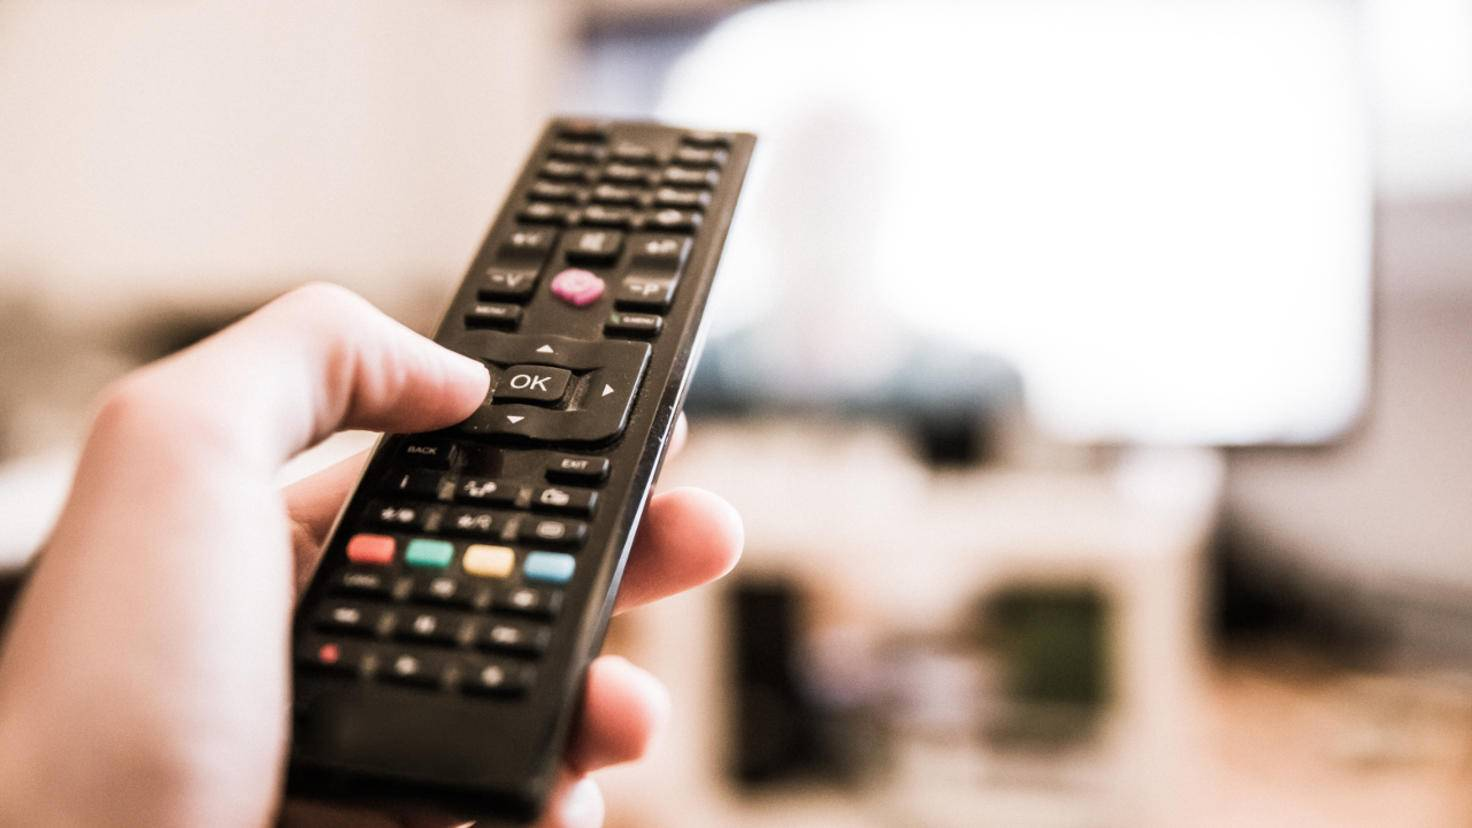 Remote control and television